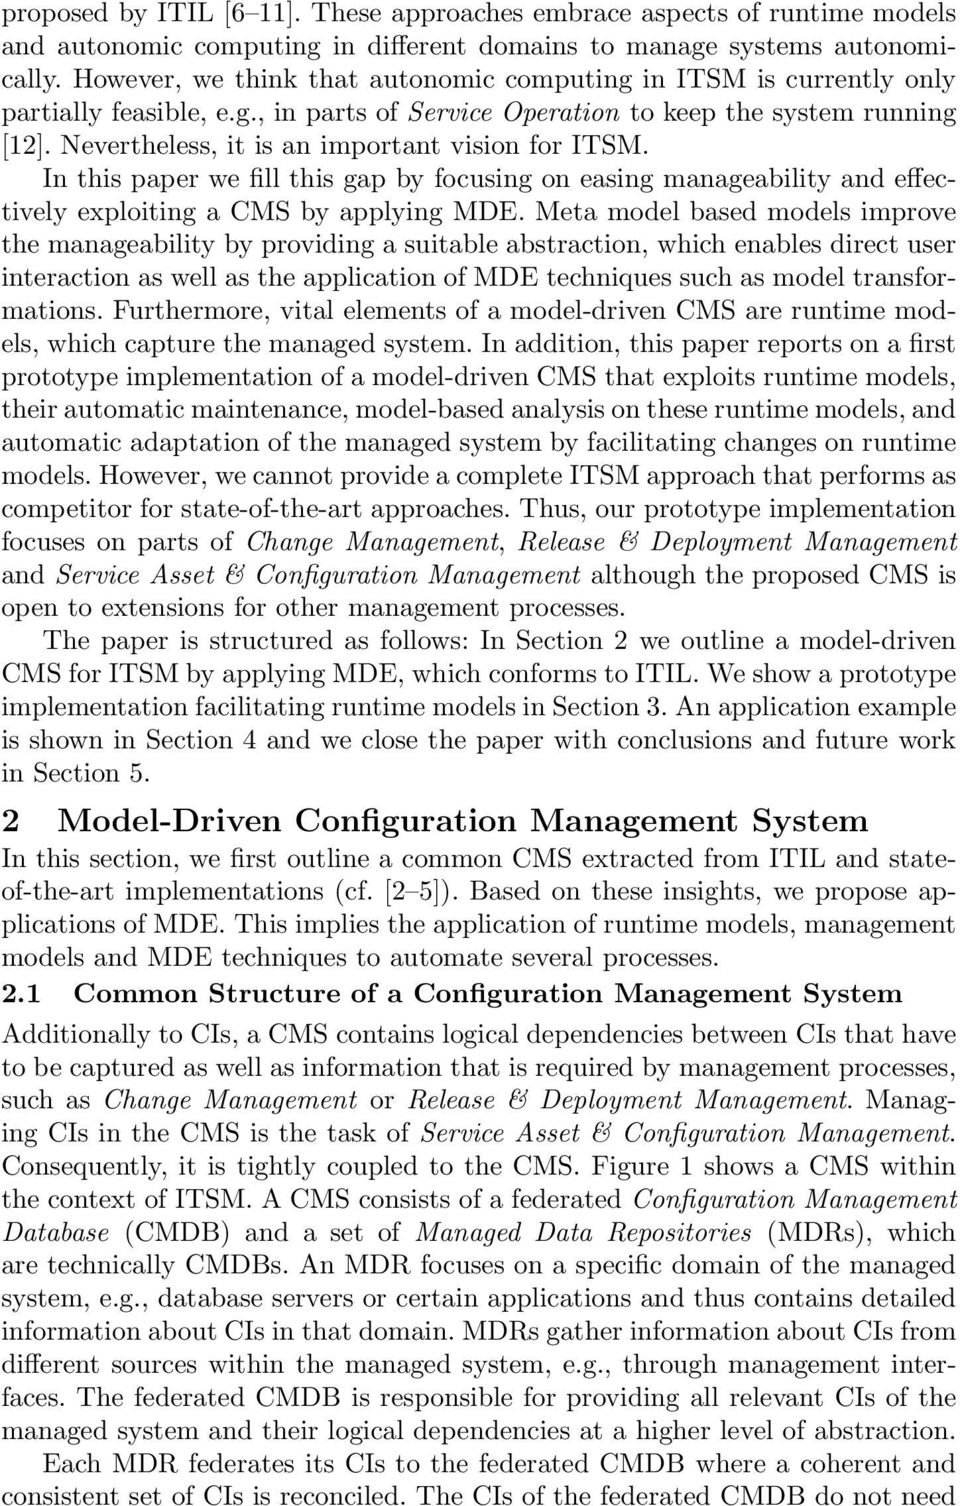 Nevertheless, it is an important vision for ITSM. In this paper we fill this gap by focusing on easing manageability and effectively exploiting a CMS by applying MDE.